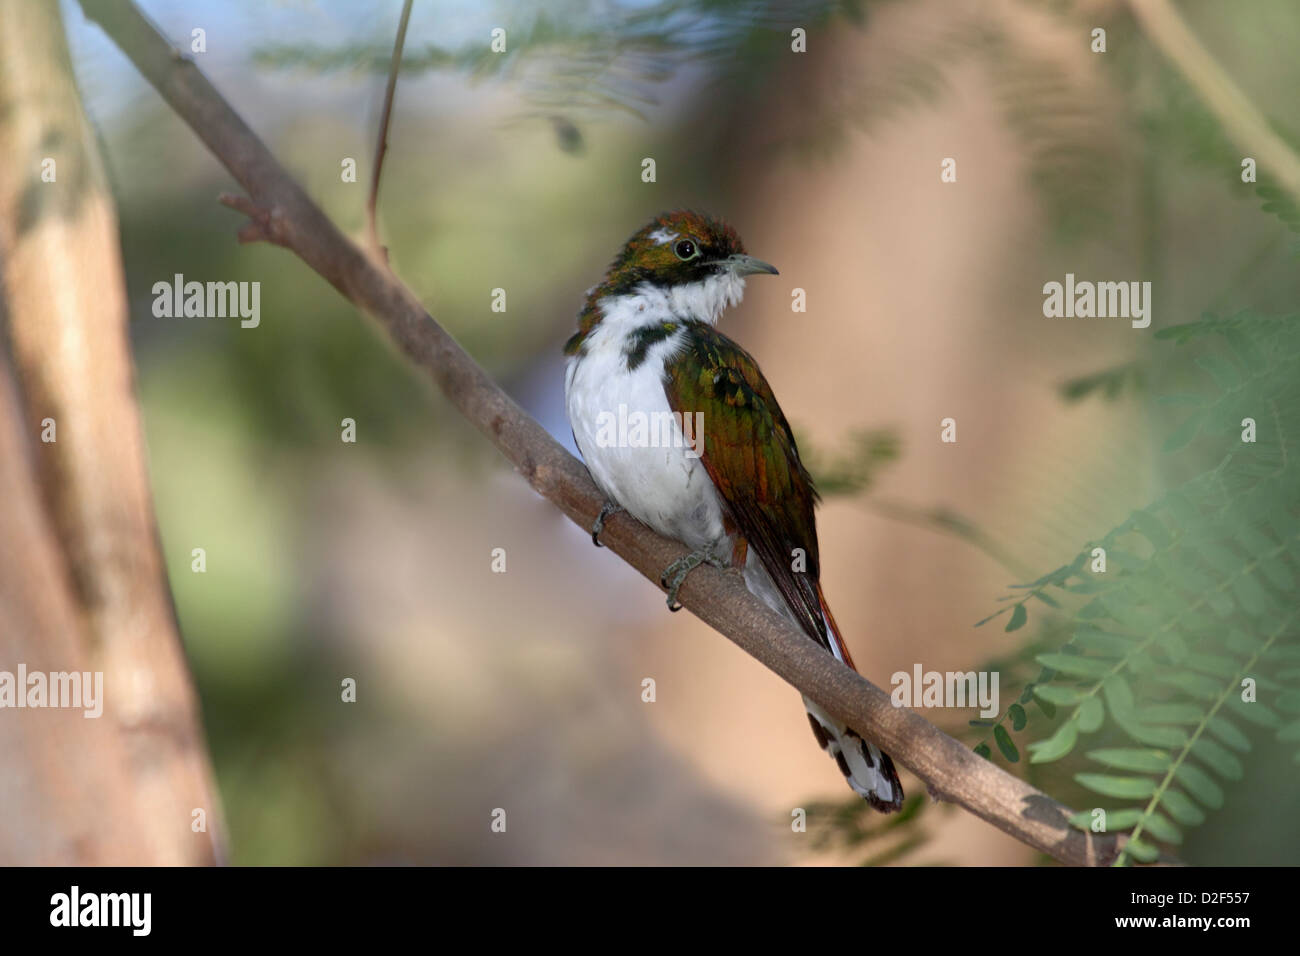 Klaass cuckoo adult male perched in tree in The Gambia - Stock Image